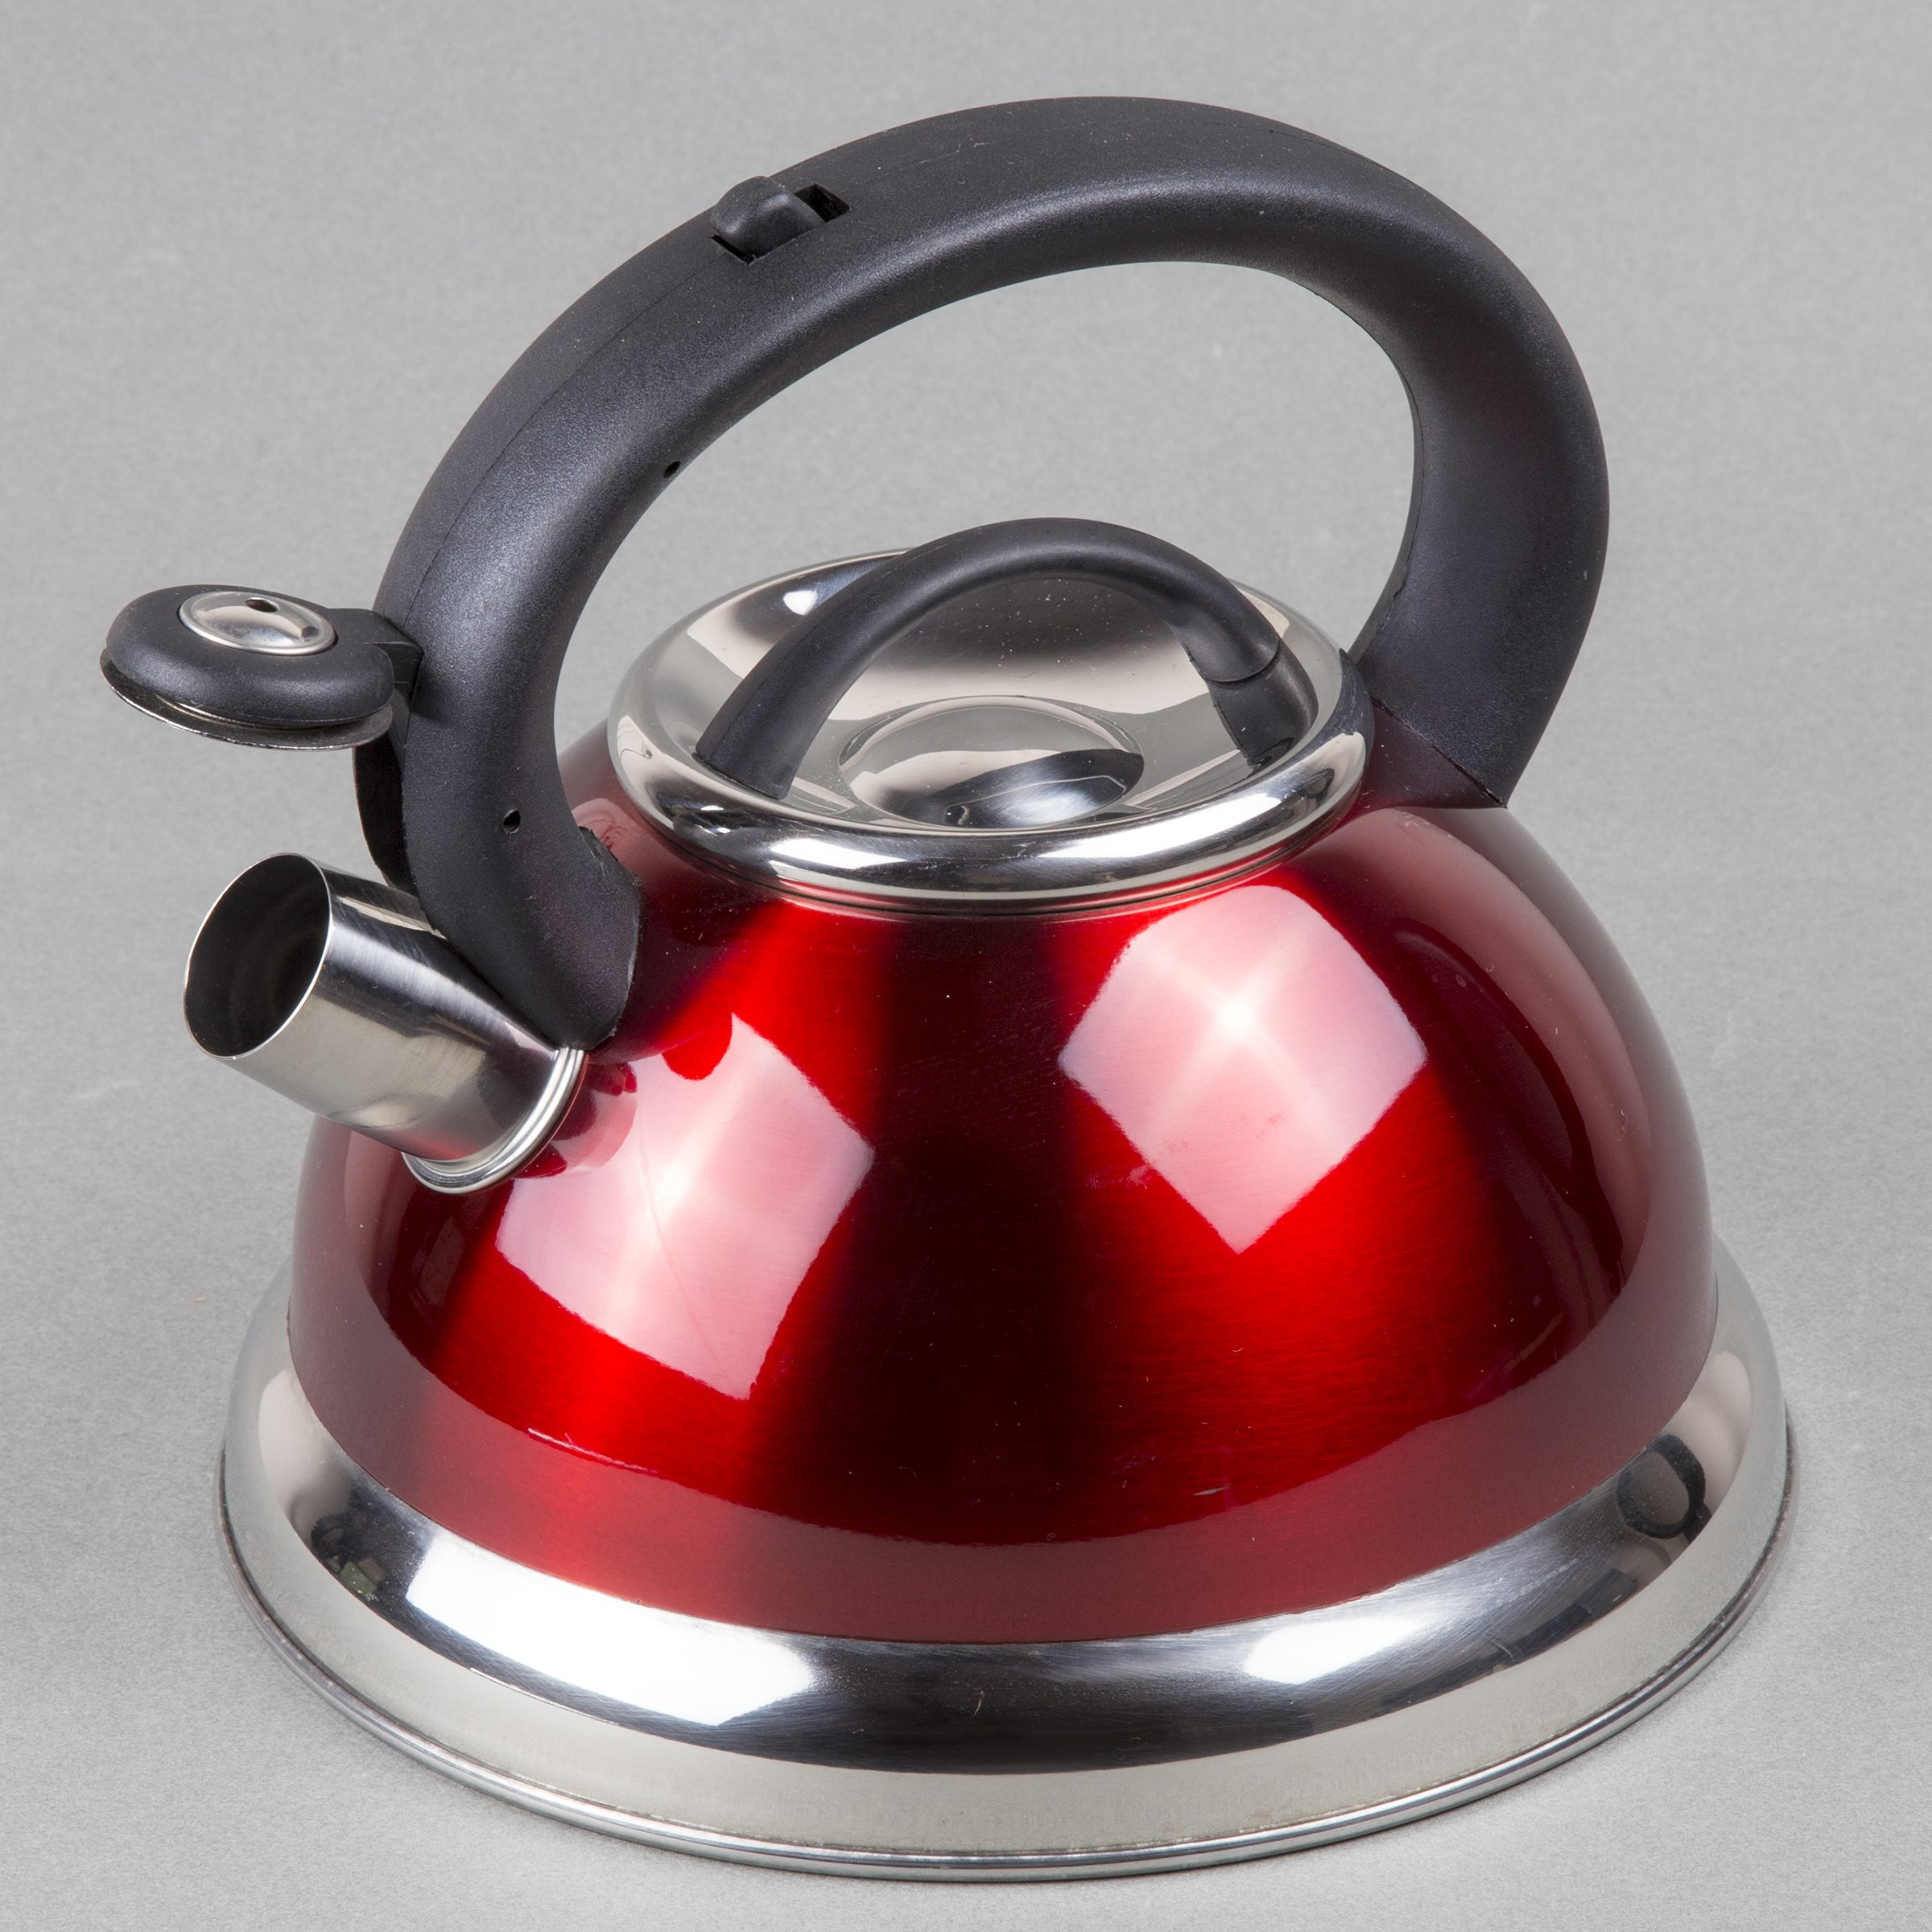 Creative Home Alexa 3.0 Whistling Tea Kettle, Cranberry by Creative Home (Image #2)